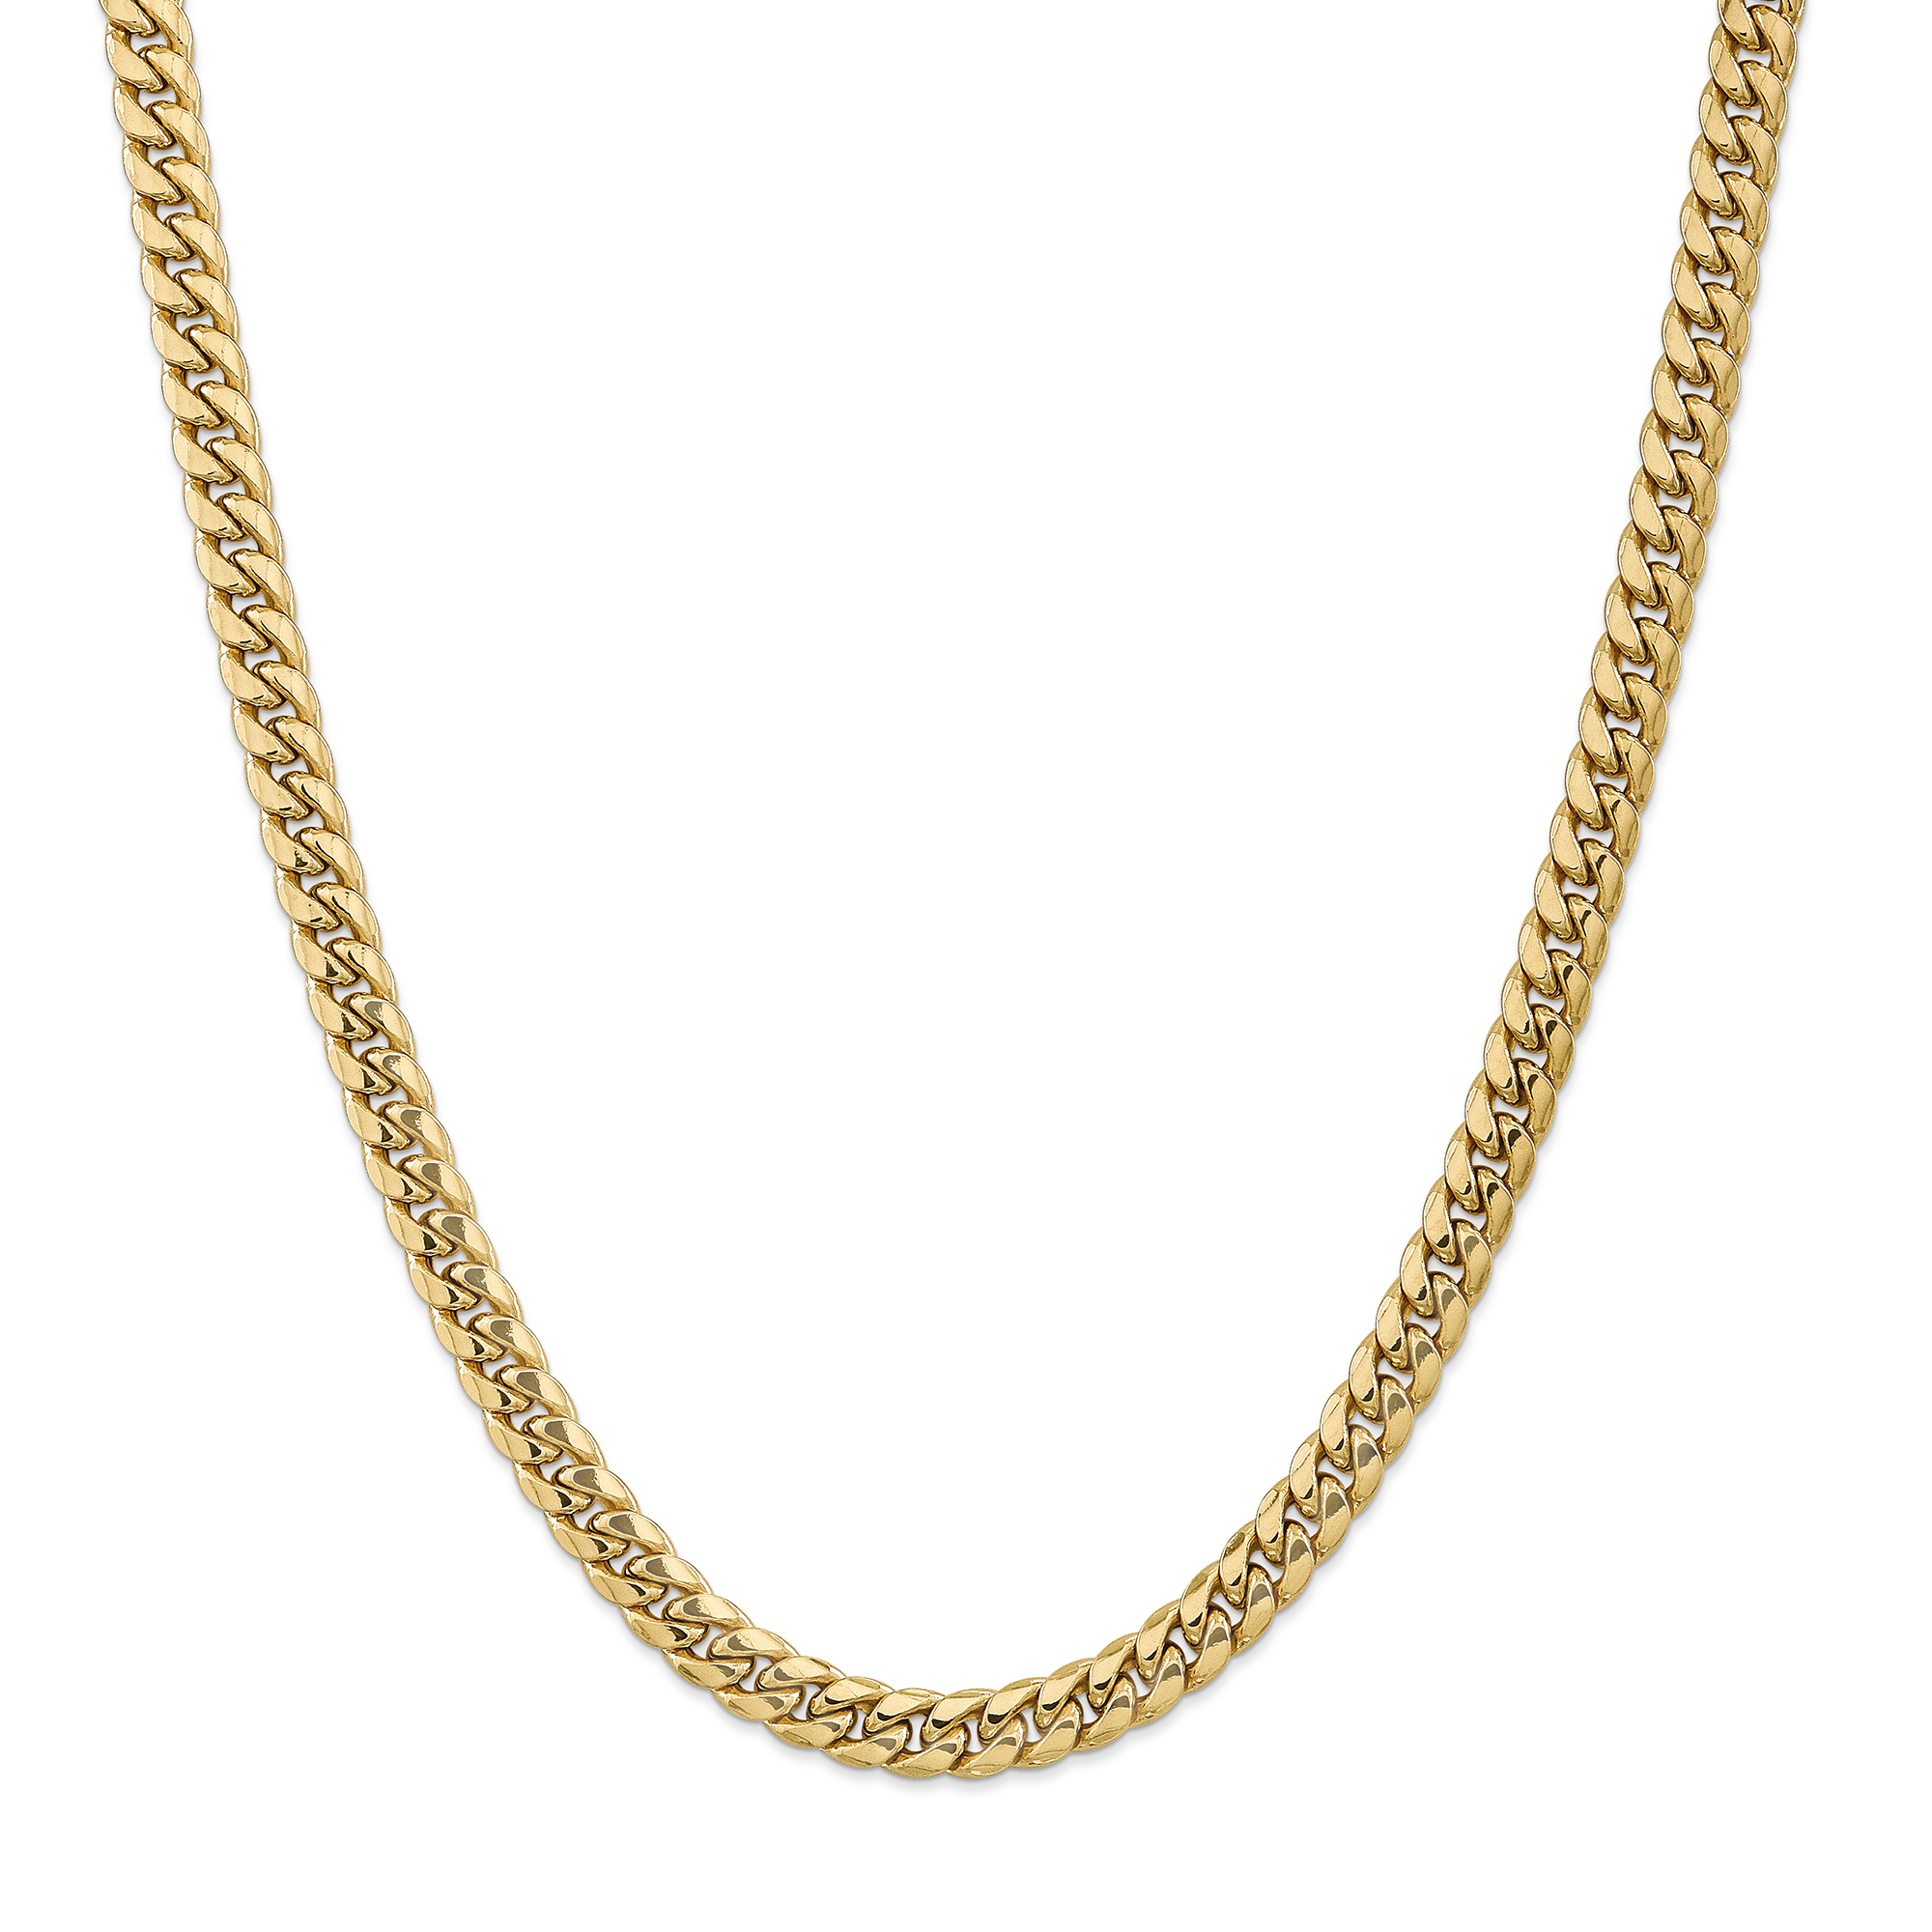 14K Yellow Gold 7.3mm Semi-Solid Miami Cuban Chain 22 Inch